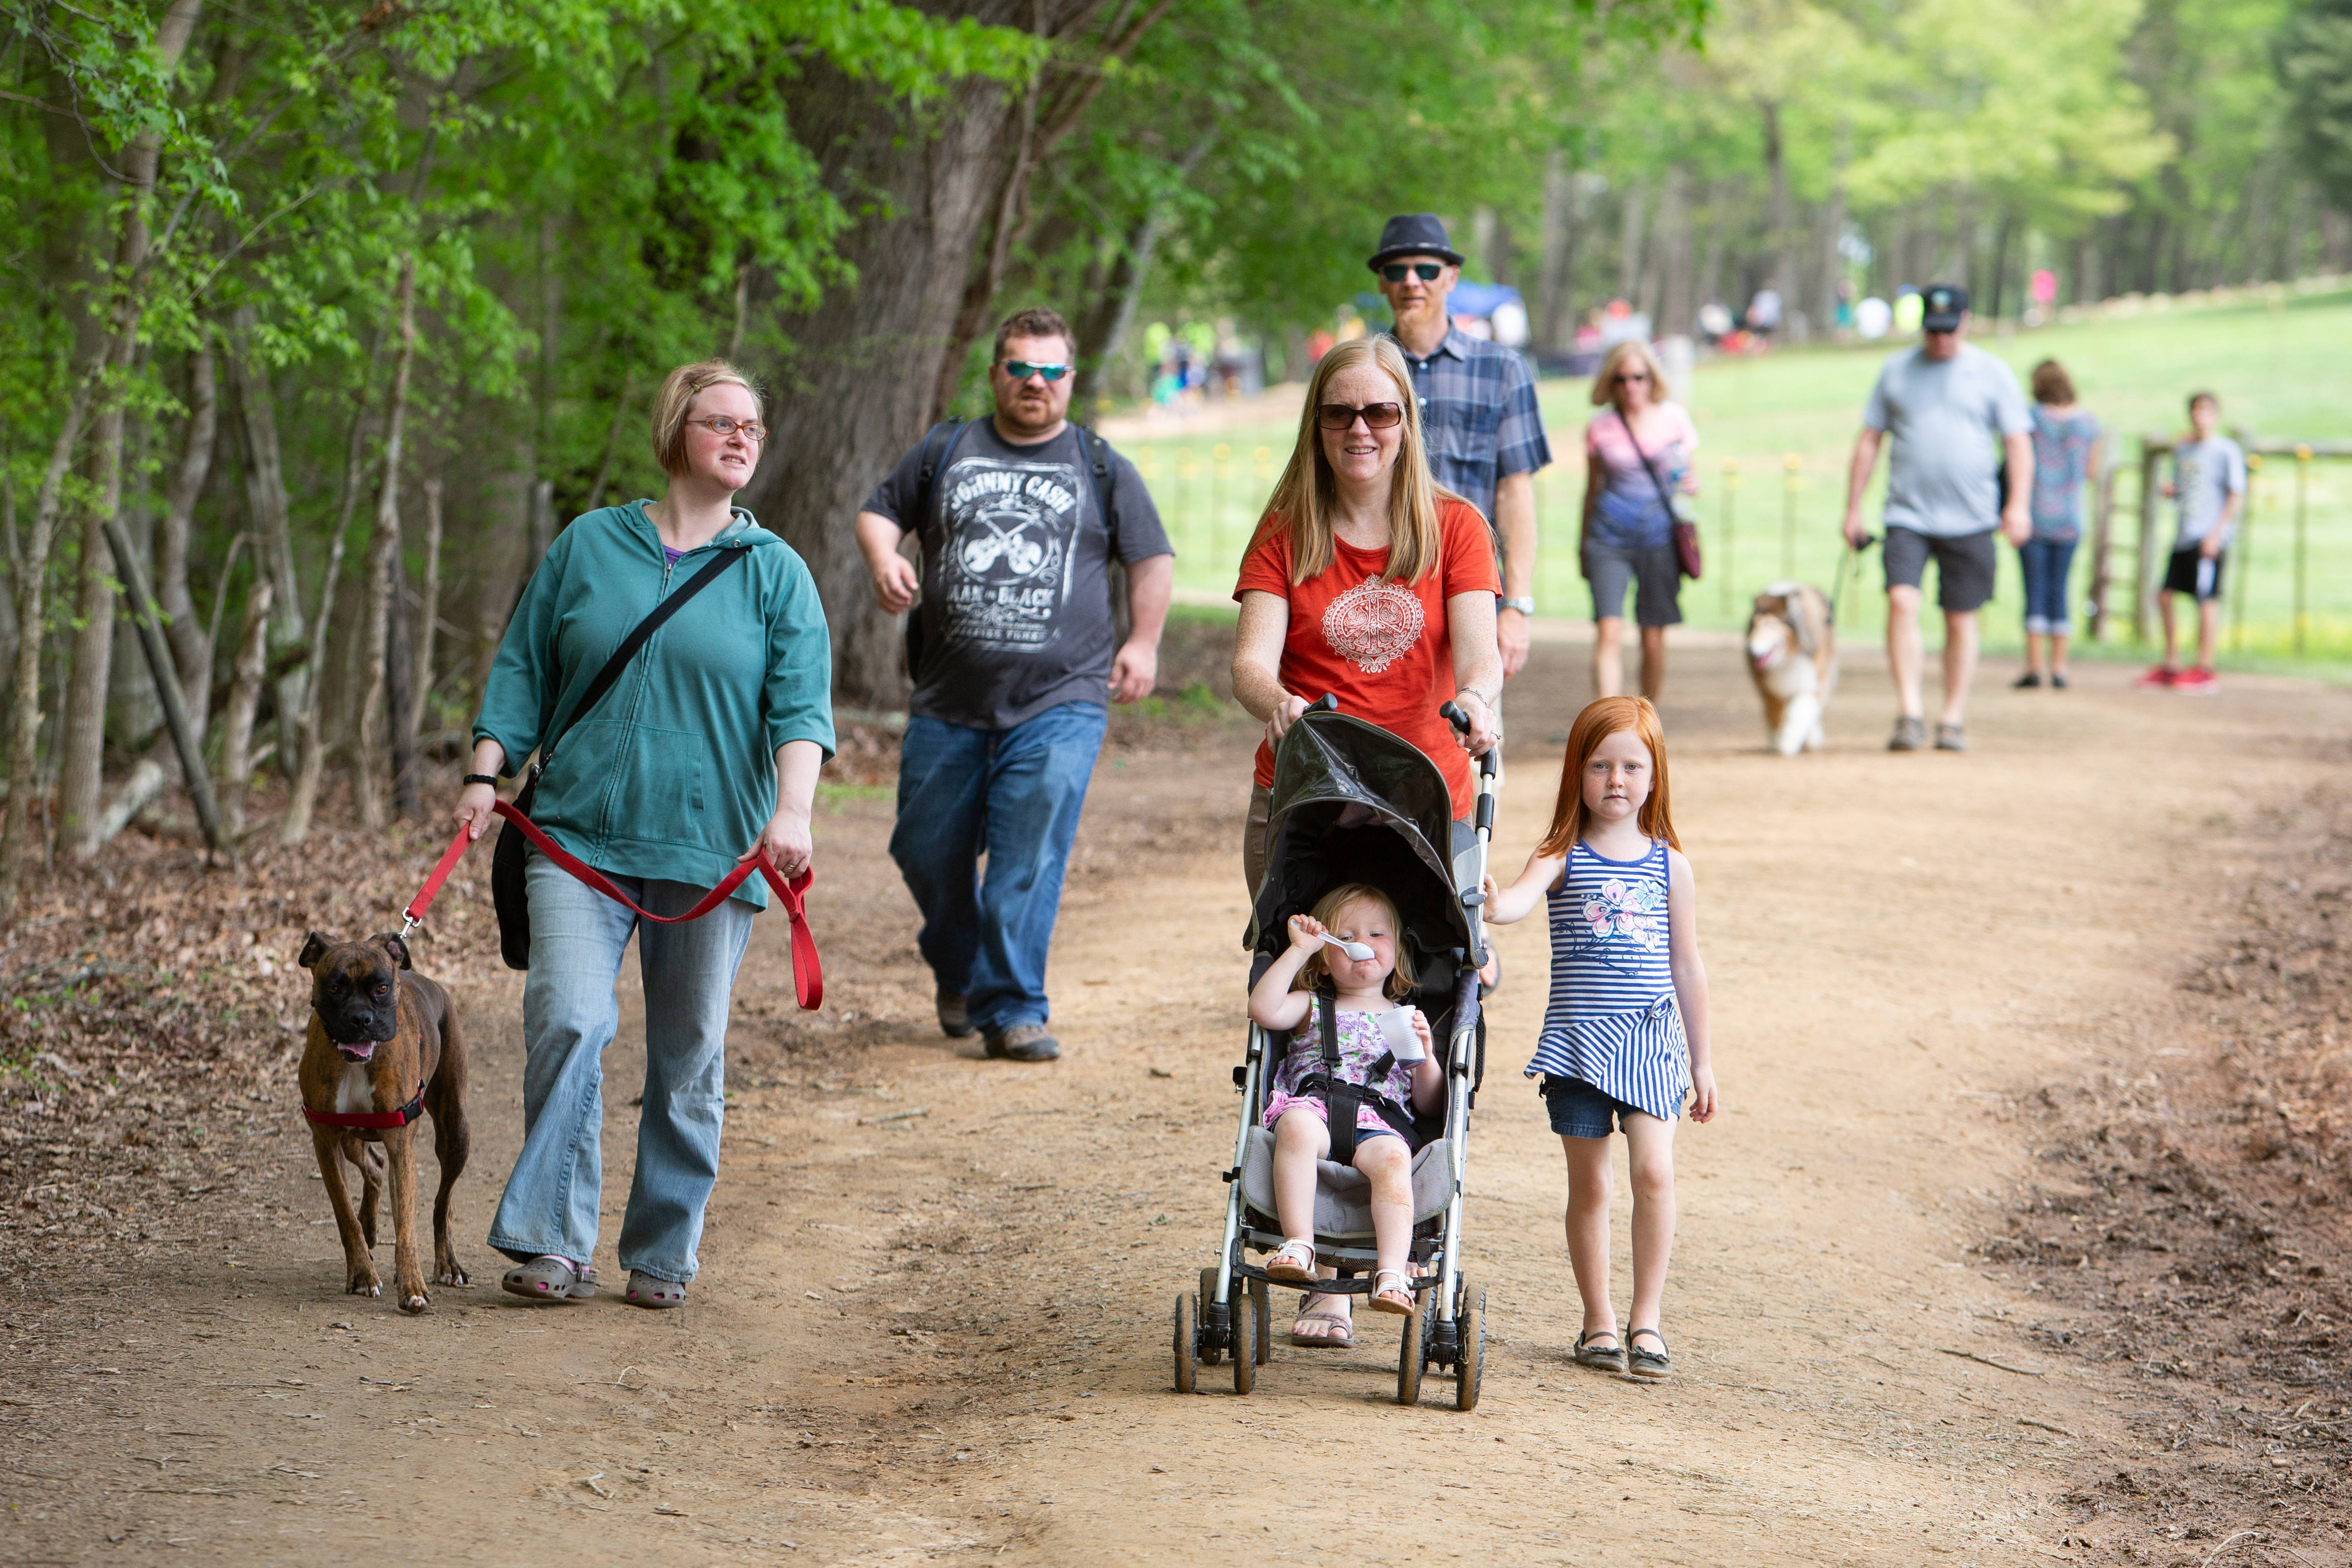 Adults and children, some in strollers, along with dogs on leashes, walk on along one of the trails at the Anne Springs Close Greenway in Fort Mill.